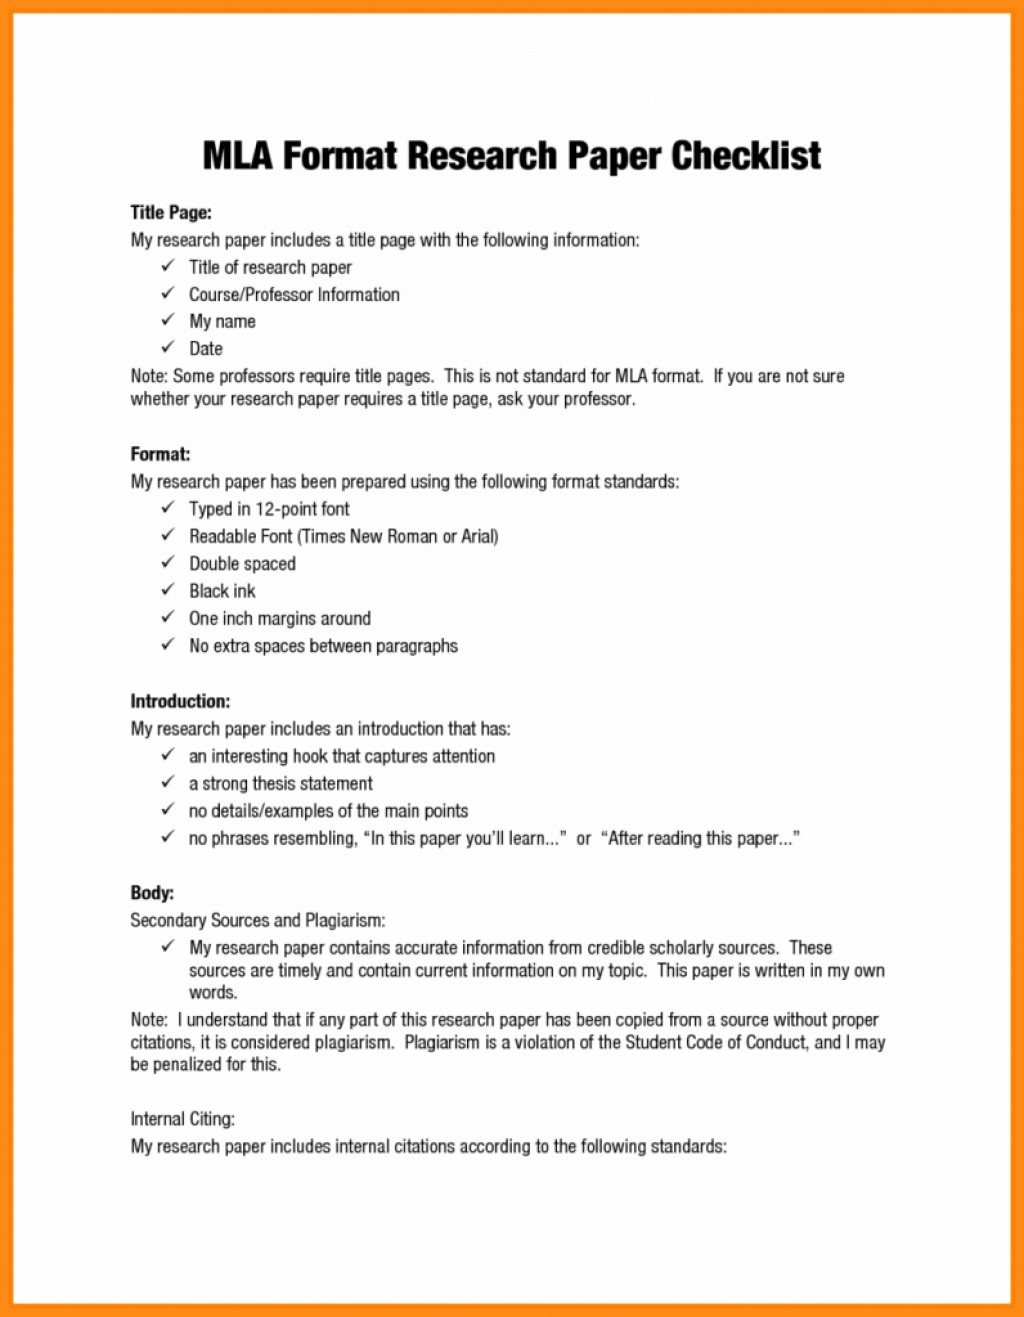 005 Research Paper Example Of Mla Best Ideas Cover Page Essay Title Apa Styles Imposing With Writing A Format Large